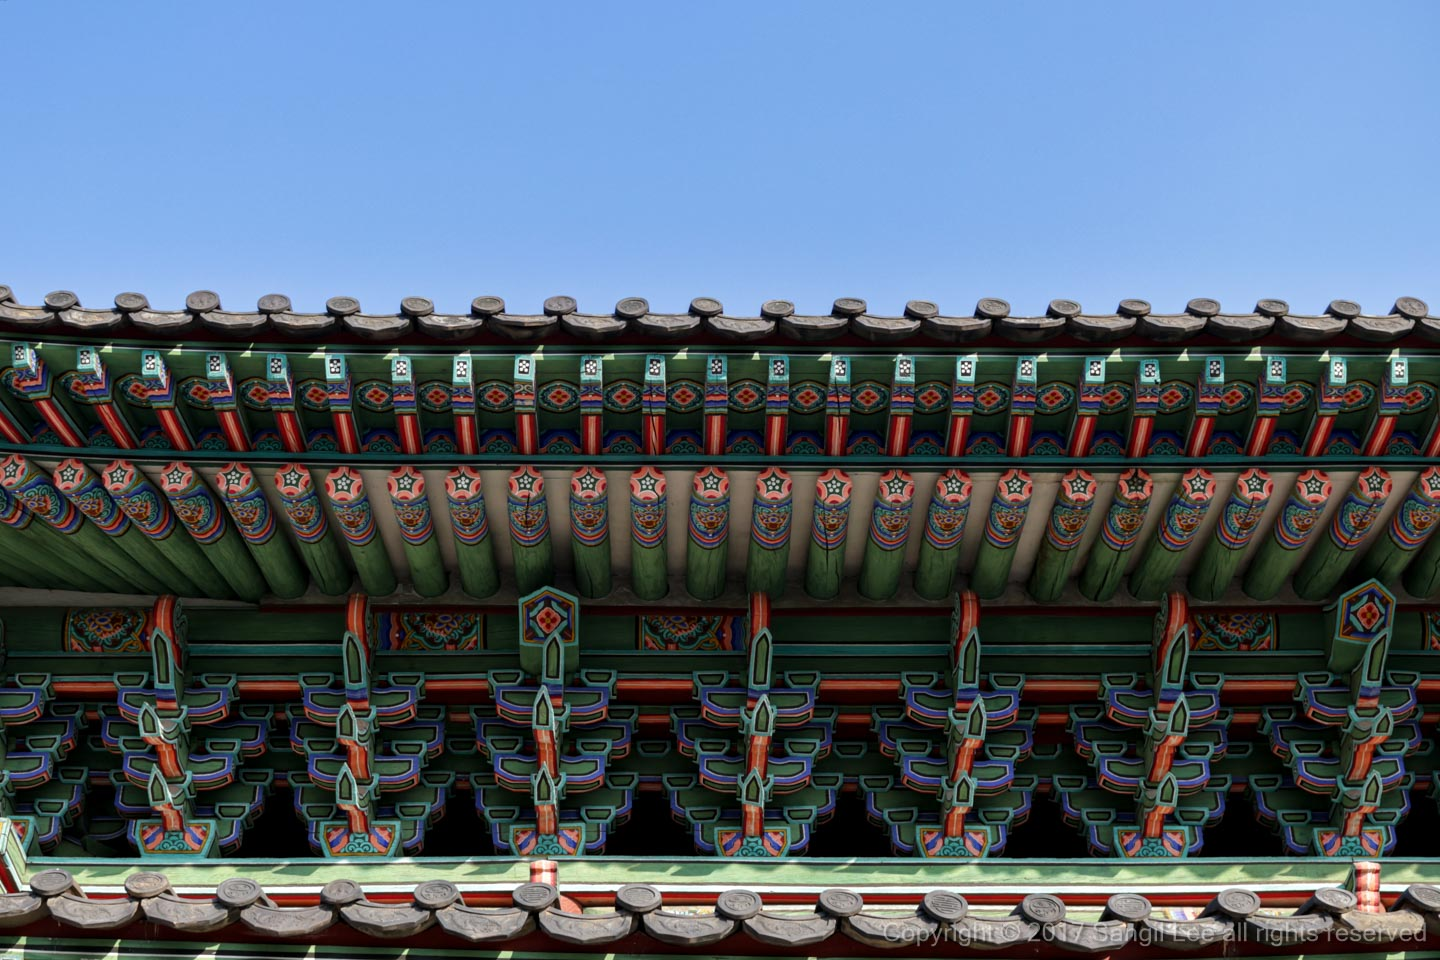 Changgeonggung palace at Seoul